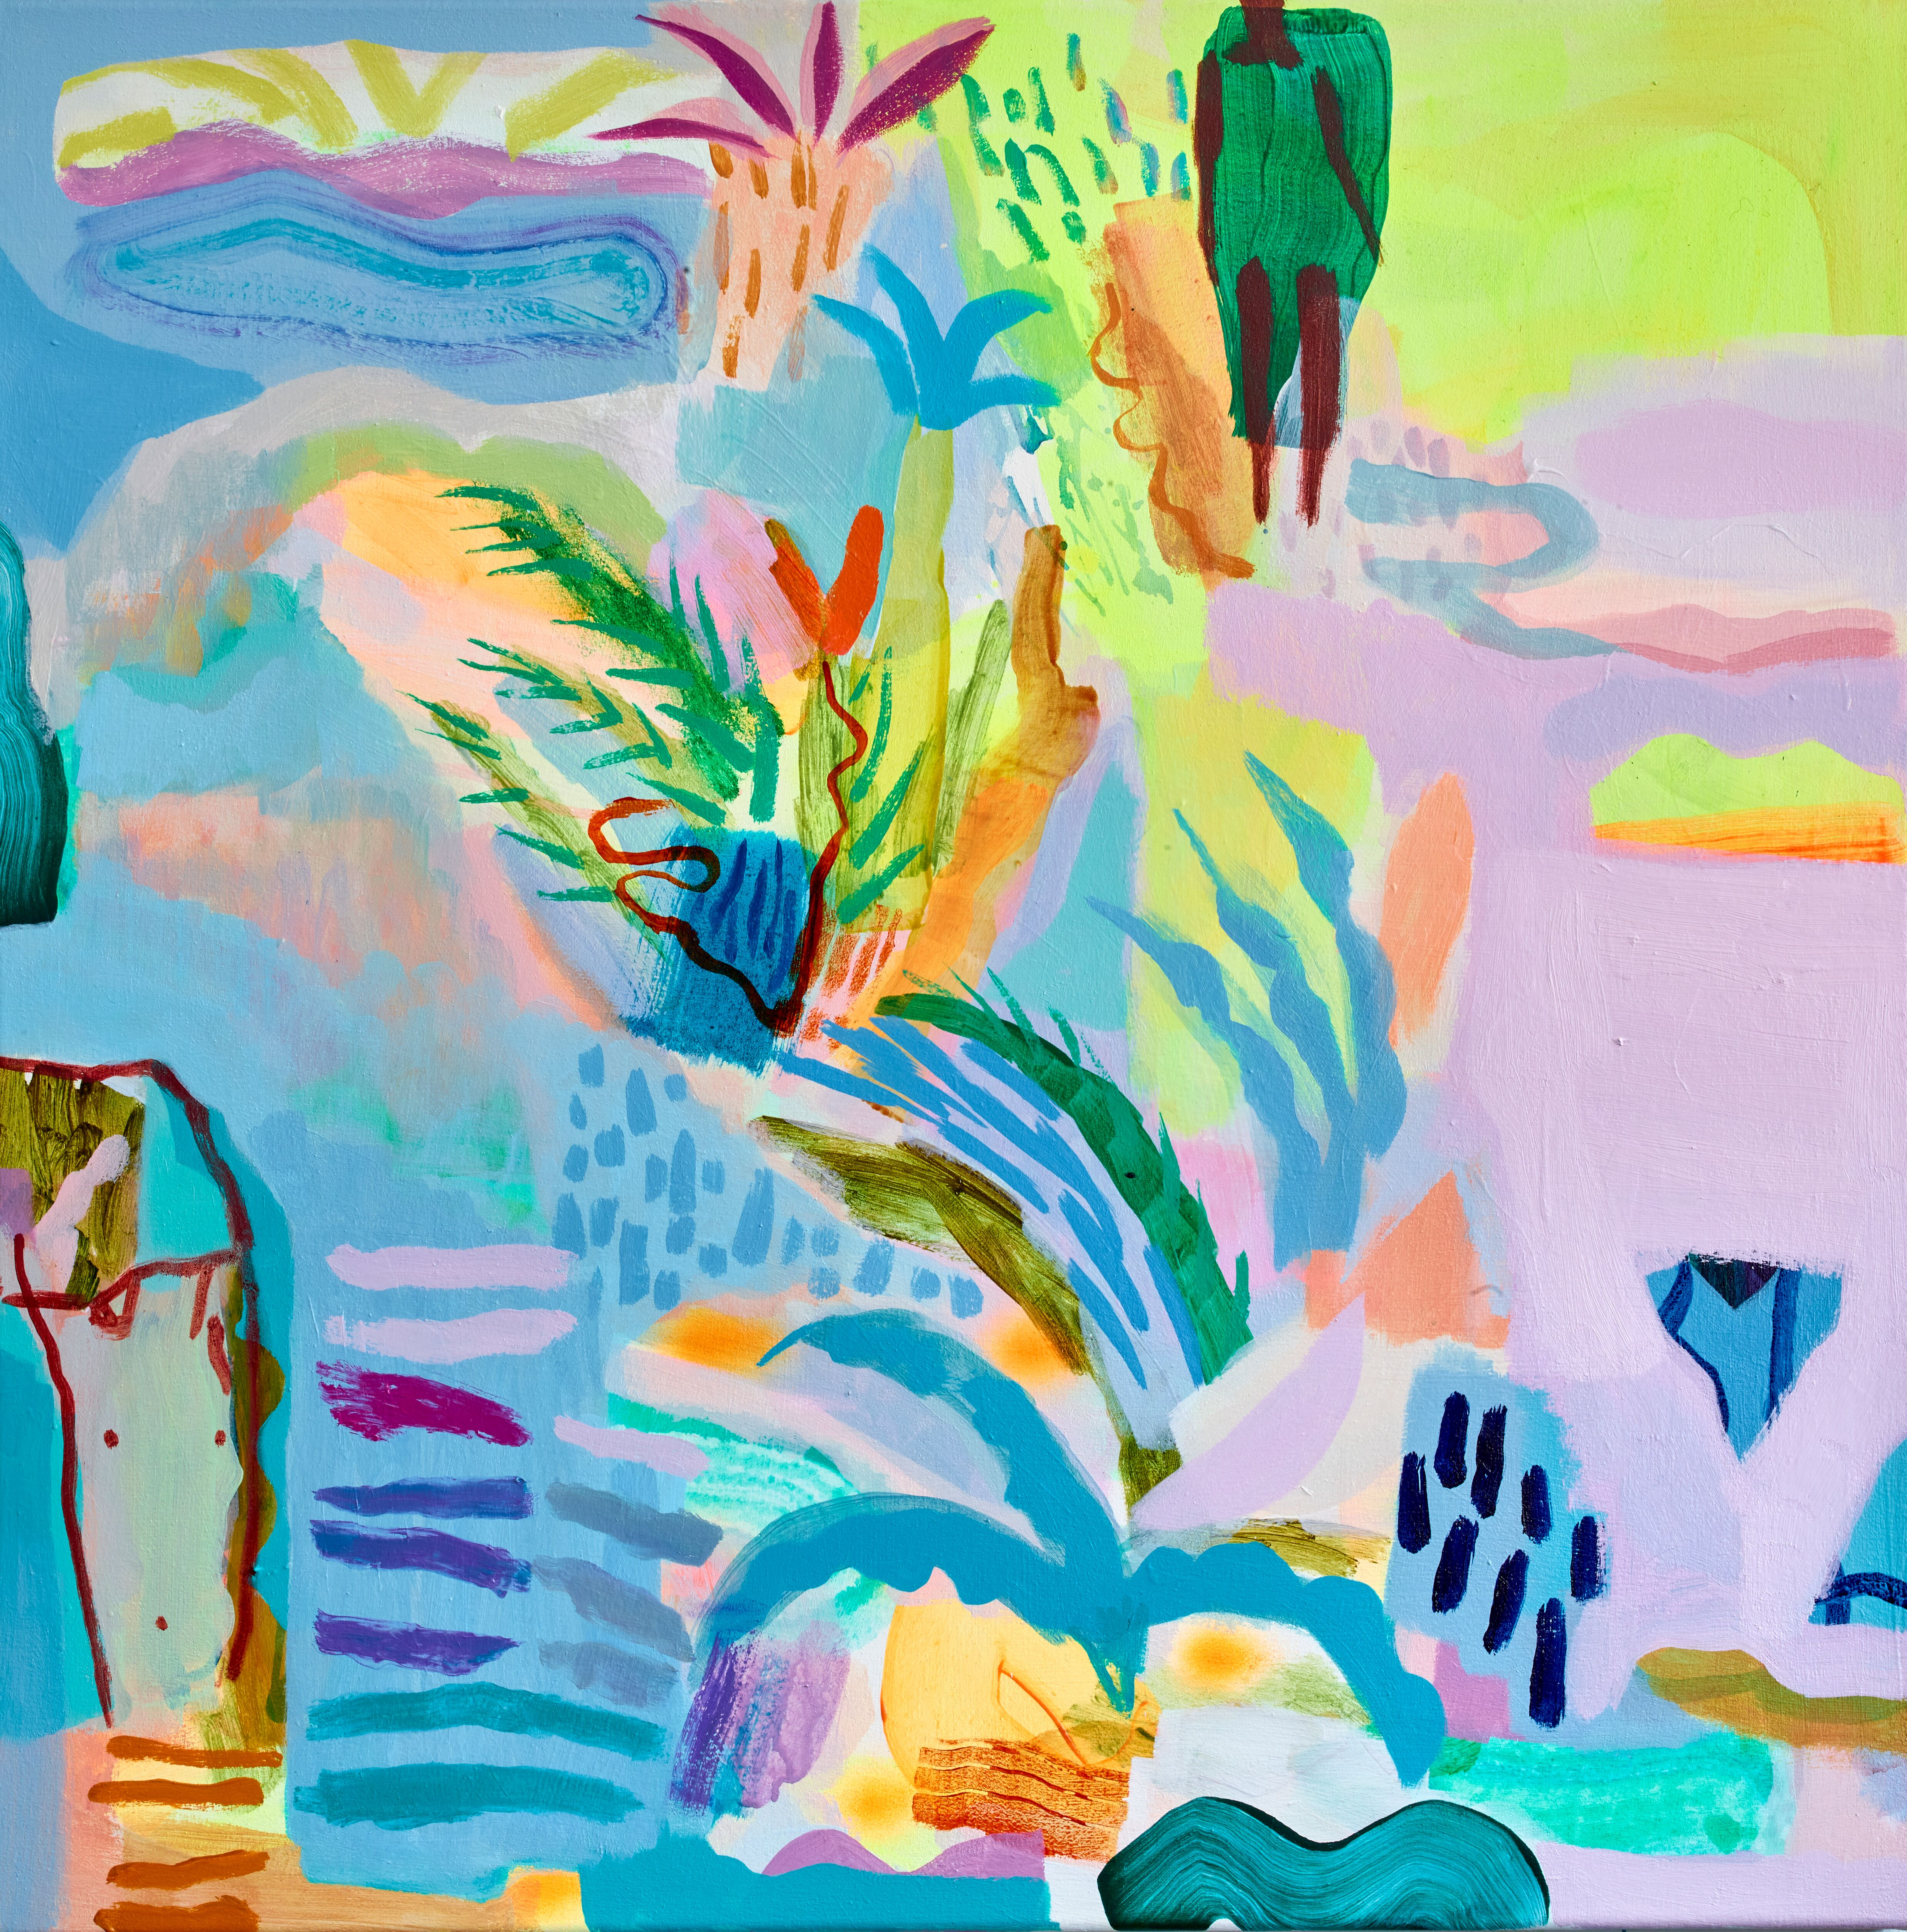 'To the Sea', Becky Blair, FOUR-WALLS